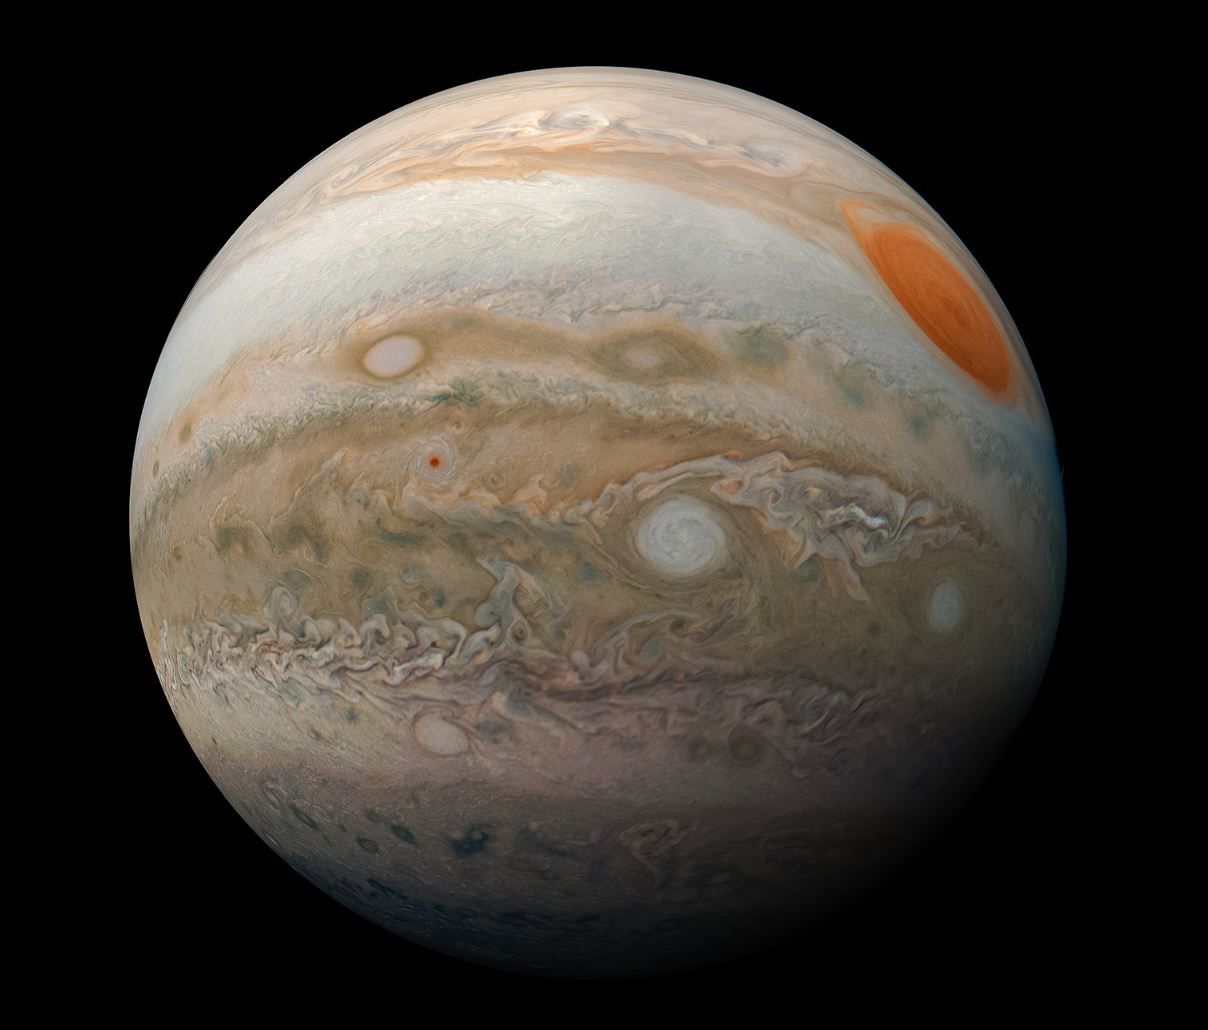 This striking view of Jupiter's Great Red Spot and turbulent southern hemisphere was captured by NASA's Juno spacecraft as it performed a close pass of the gas giant planet. - Image Credits: NASA/JPL-Caltech/SwRI/MSSS/Kevin M. Gill